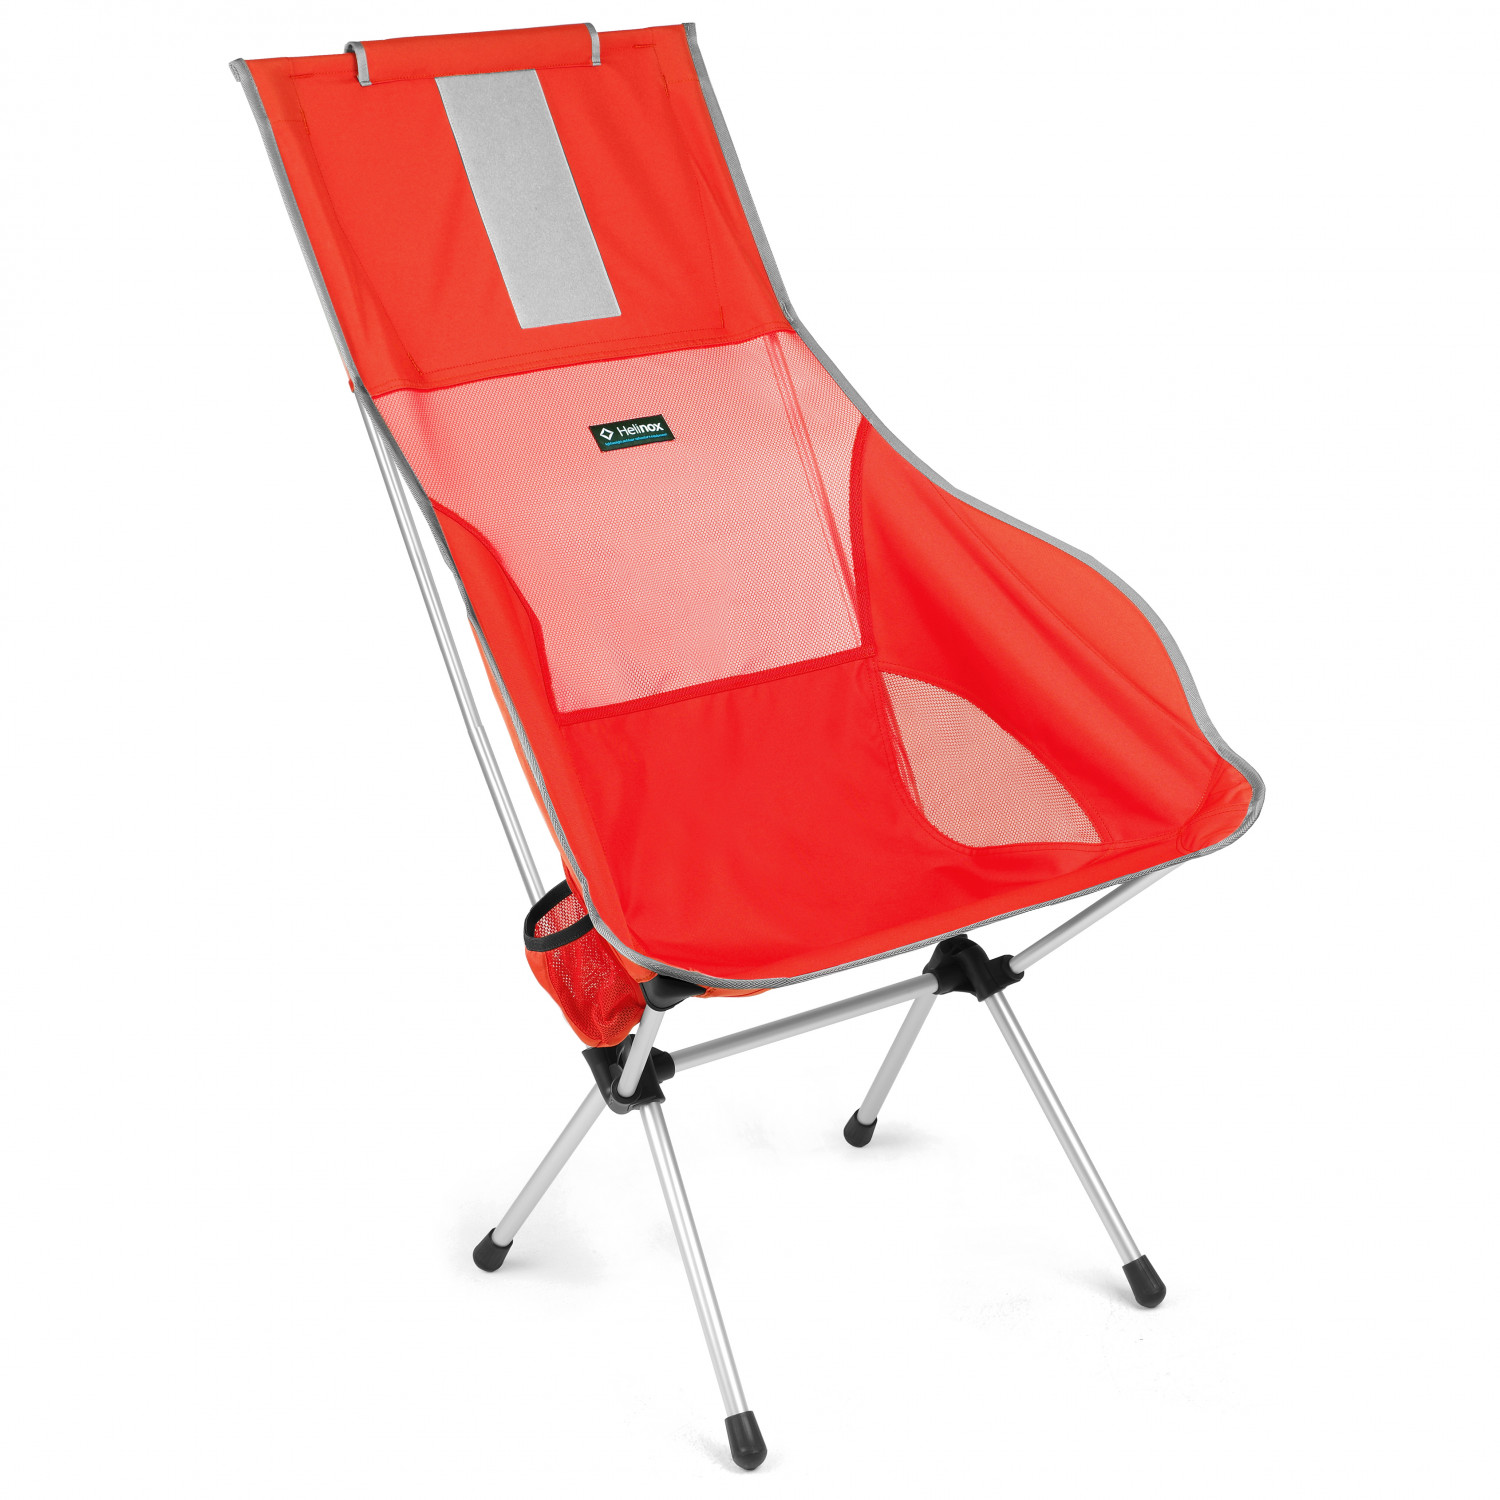 Enjoyable Helinox Savanna Chair Camping Chair Grey Onthecornerstone Fun Painted Chair Ideas Images Onthecornerstoneorg